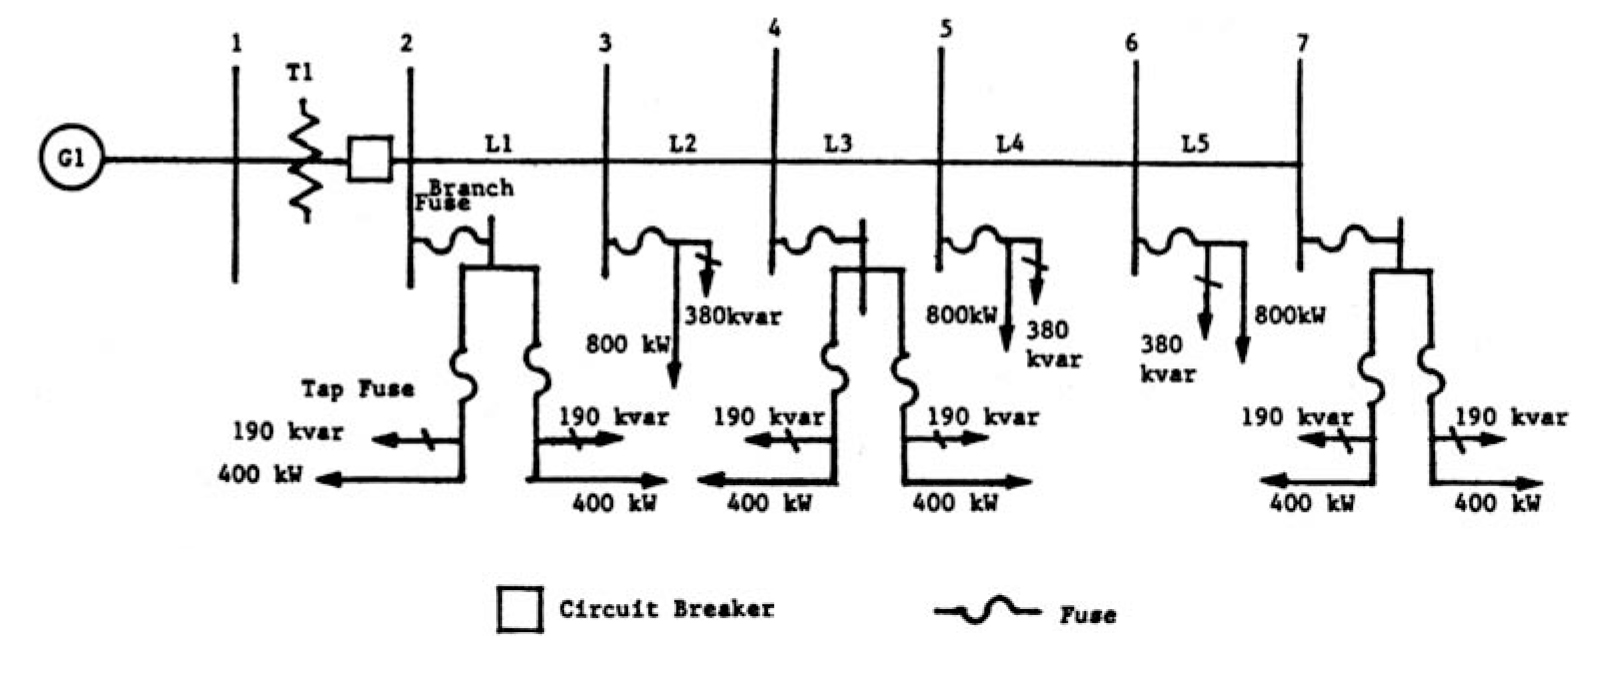 Power system analysis and design glover solution manual